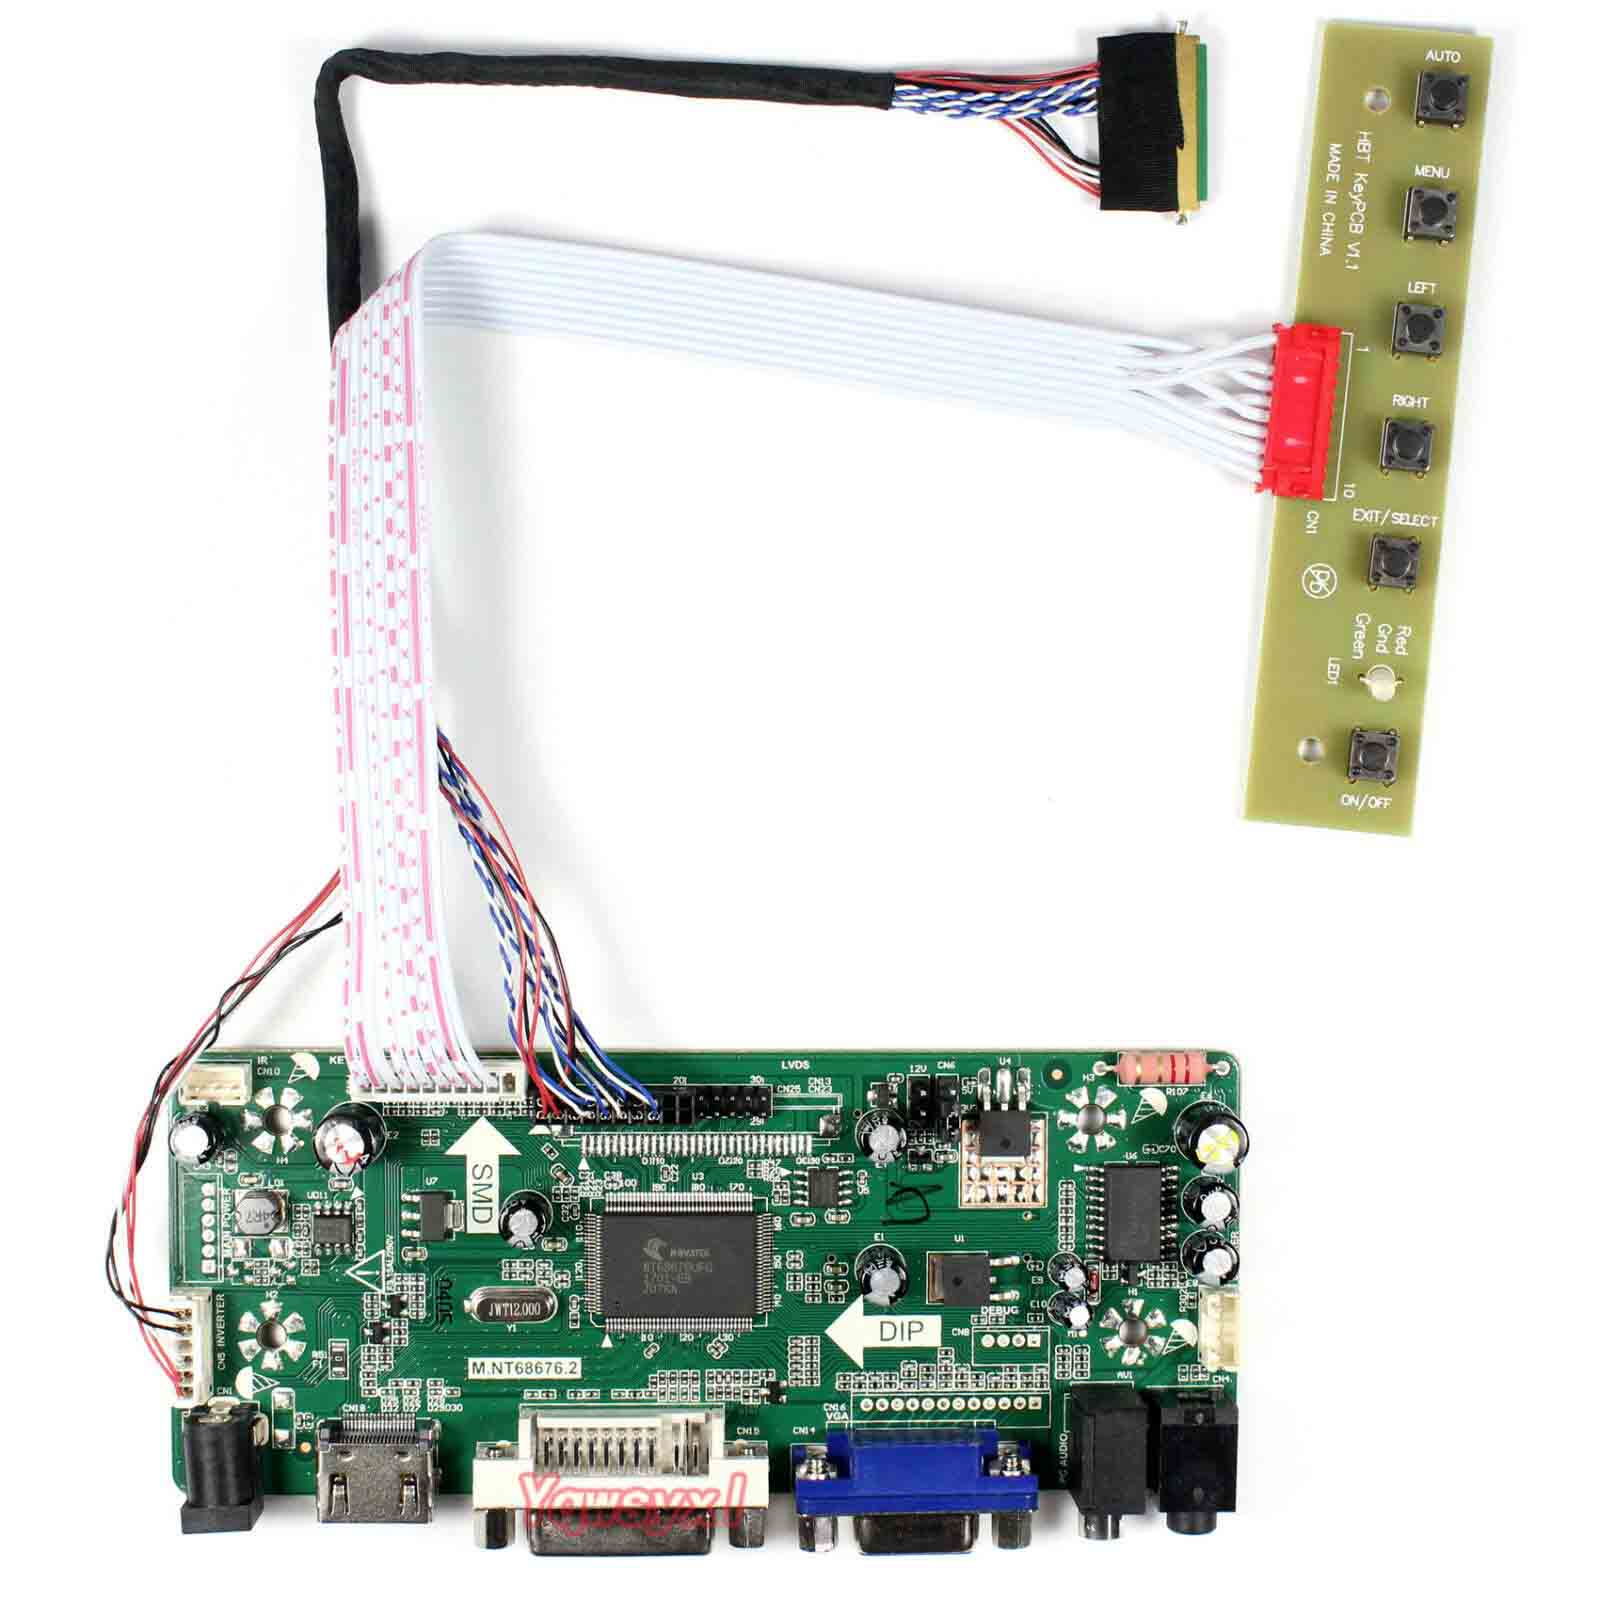 Yqwsyxl Control Board Monitor Kit For B156XTN02.1  HDMI+ DVI+VGA LCD LED  Screen Controller Board Driver